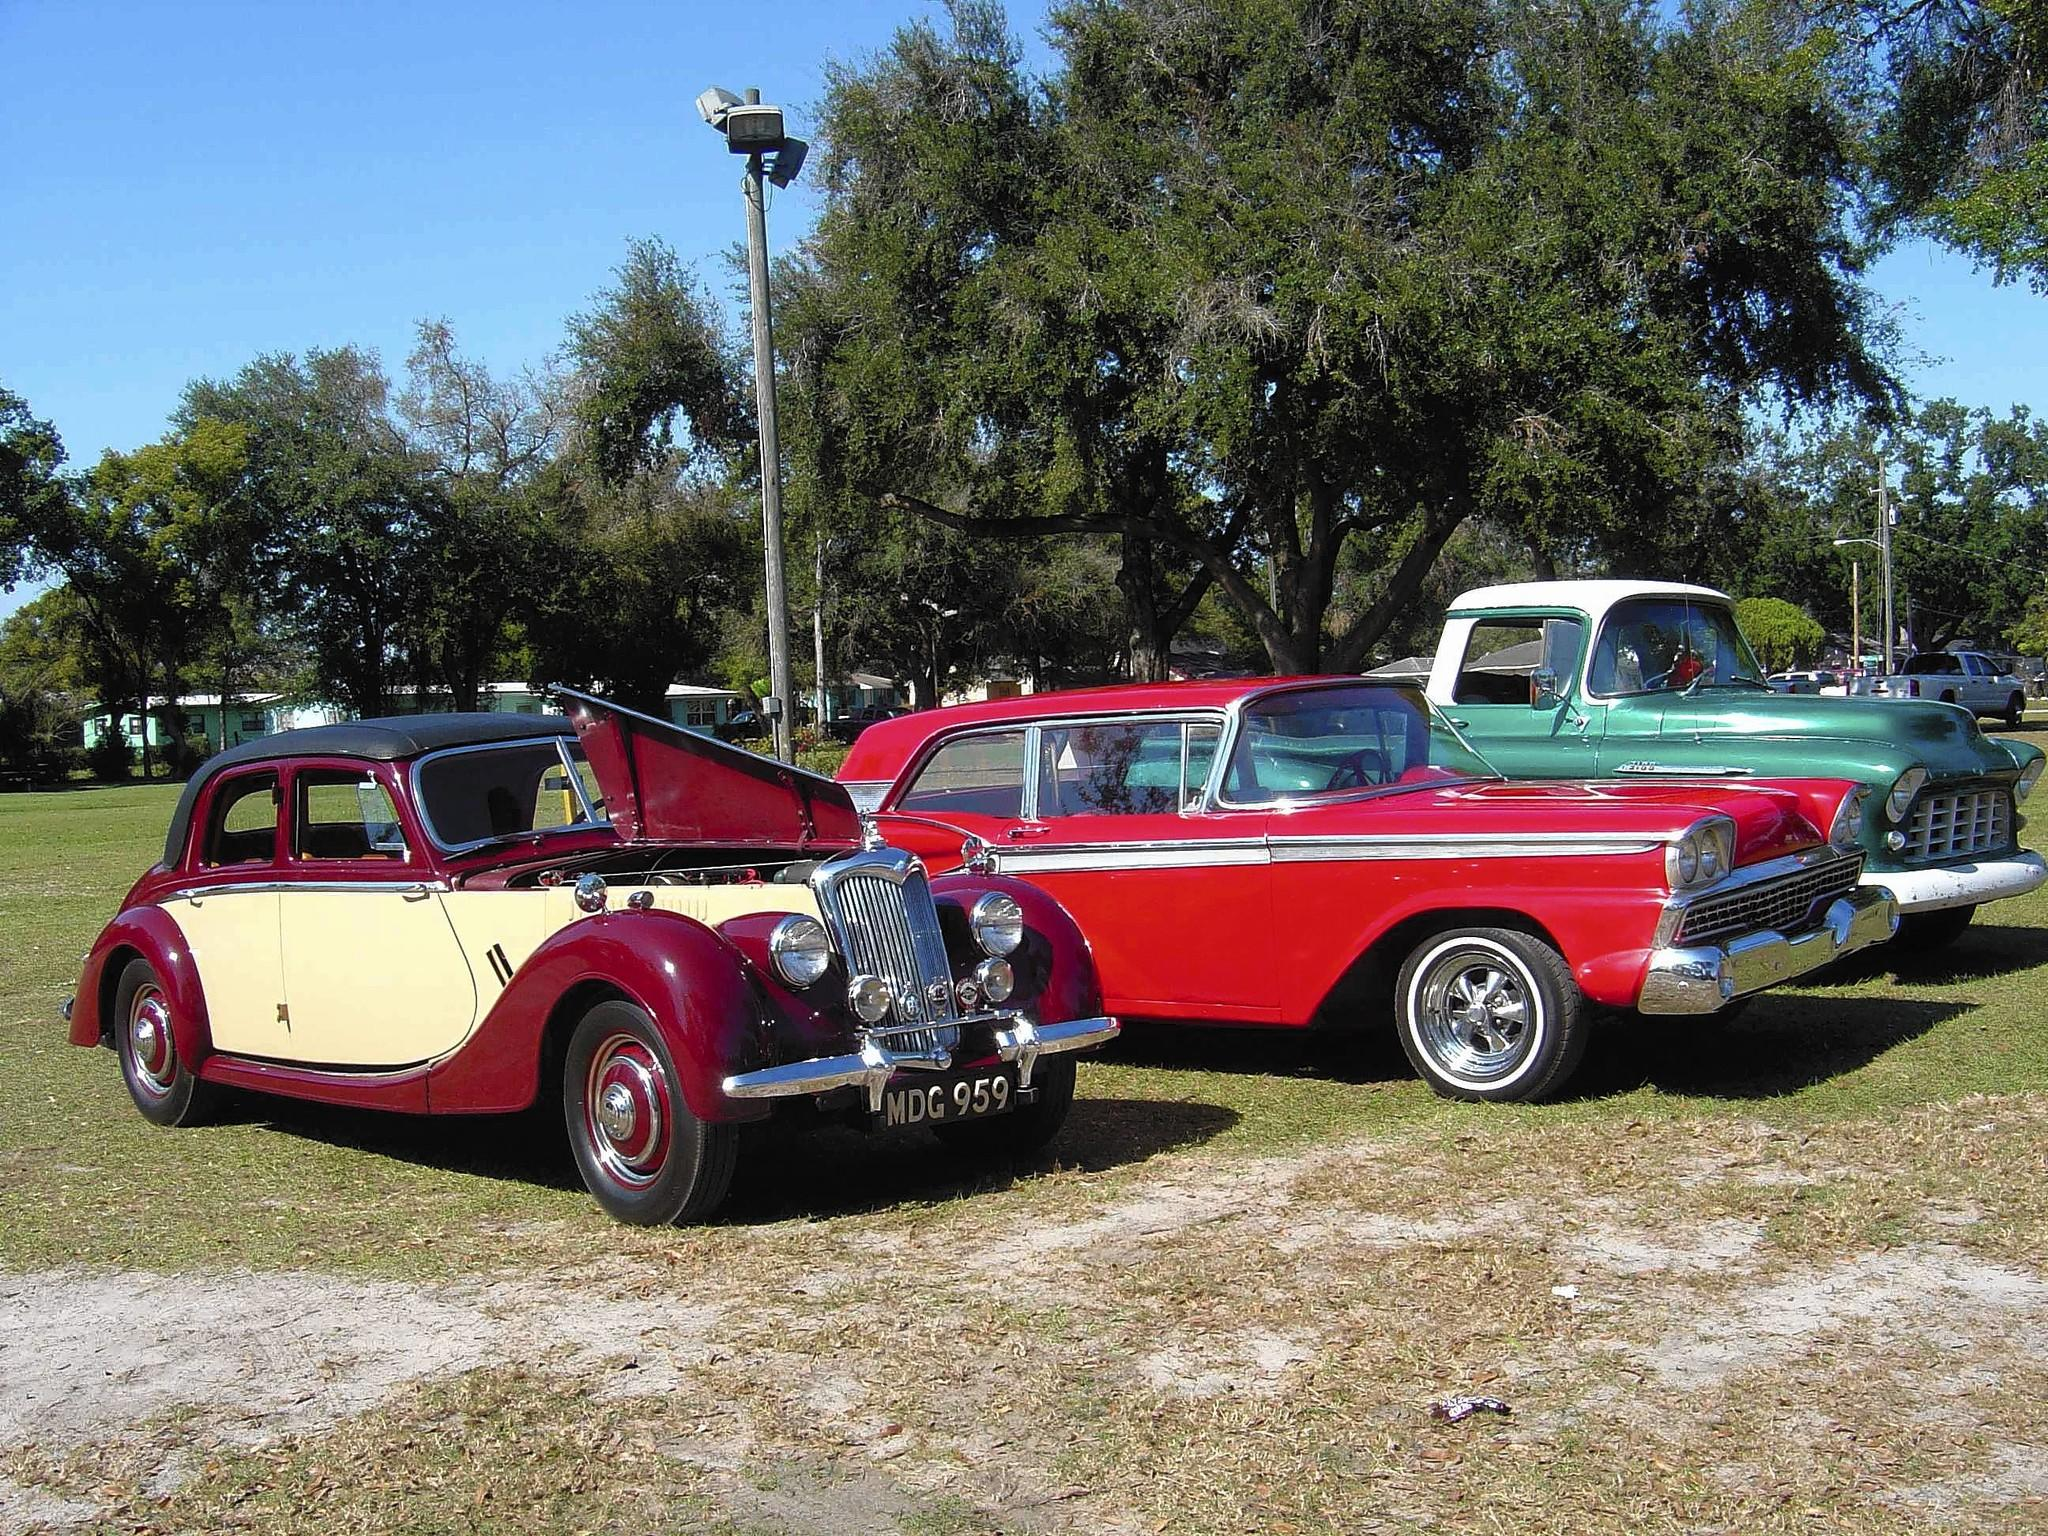 Pre-1964 hot rods and custom cars will be revving their engines and zooming into Cowboys Orlando for the Rumbler Car Club's ninth annual Groundhog Gala on Saturday February 7.